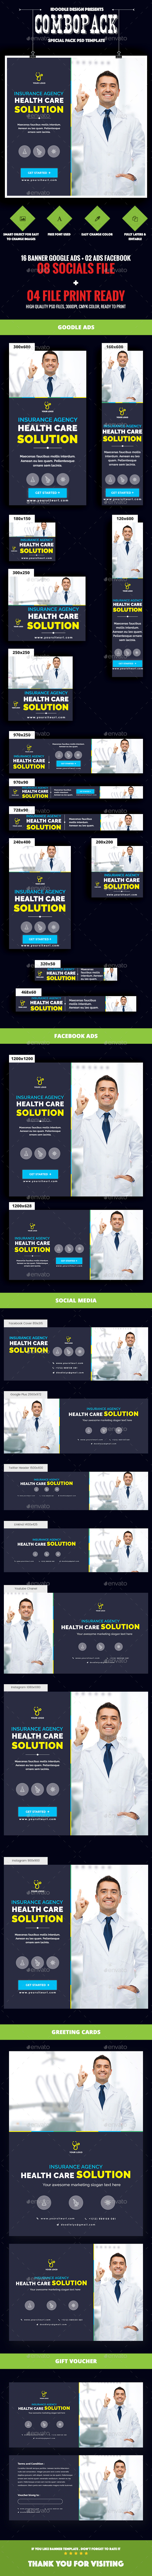 Combo Pack - Medical Agency Special Pack (Banner Ads, Print Ready, Social Cover) - 30 PSD - Banners & Ads Web Elements